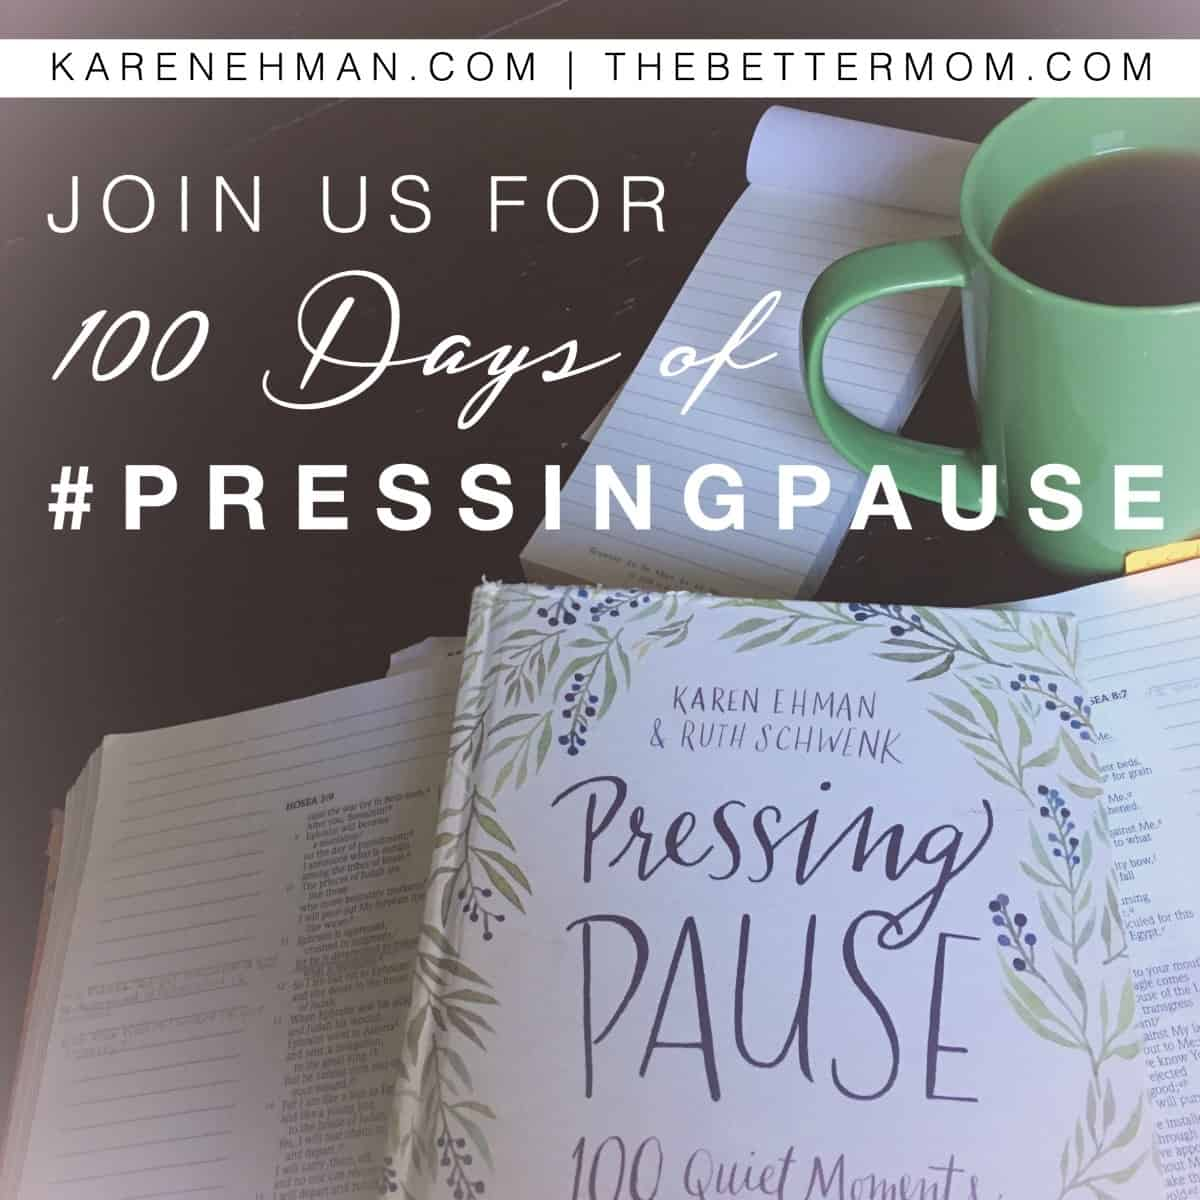 100 Days of Pressing Pause - a summer community for moms on Facebook with co-authors Karen Ehman and Ruth Schwenk (The Better Mom). Click here to join us.